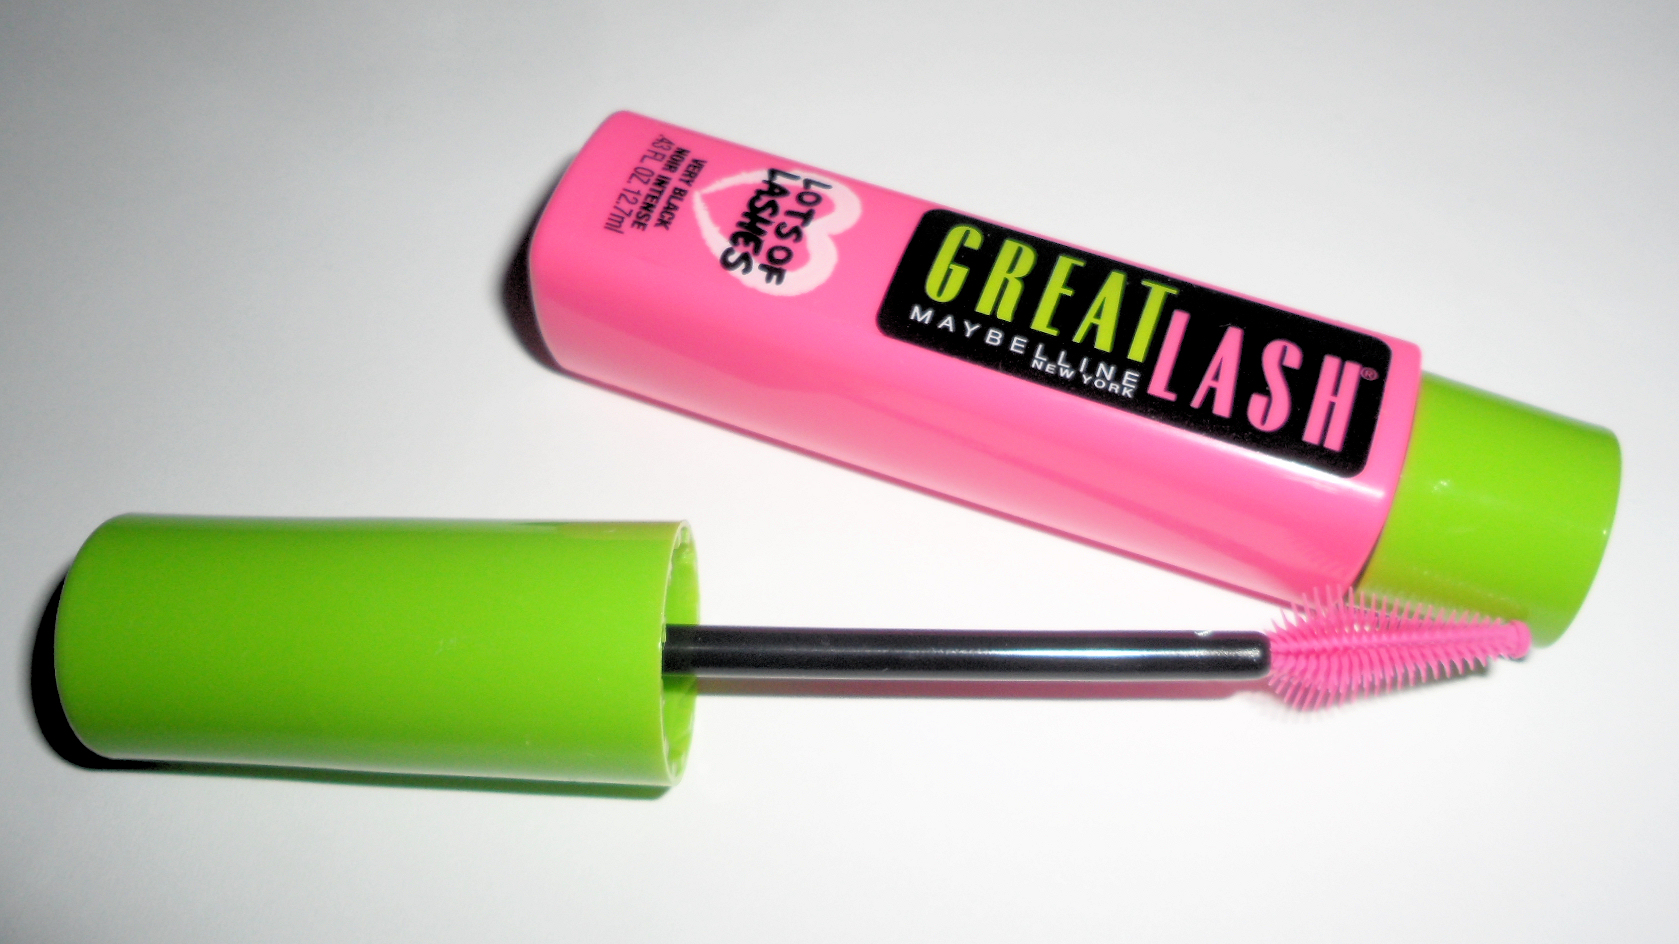 Maybelline: Great Lash